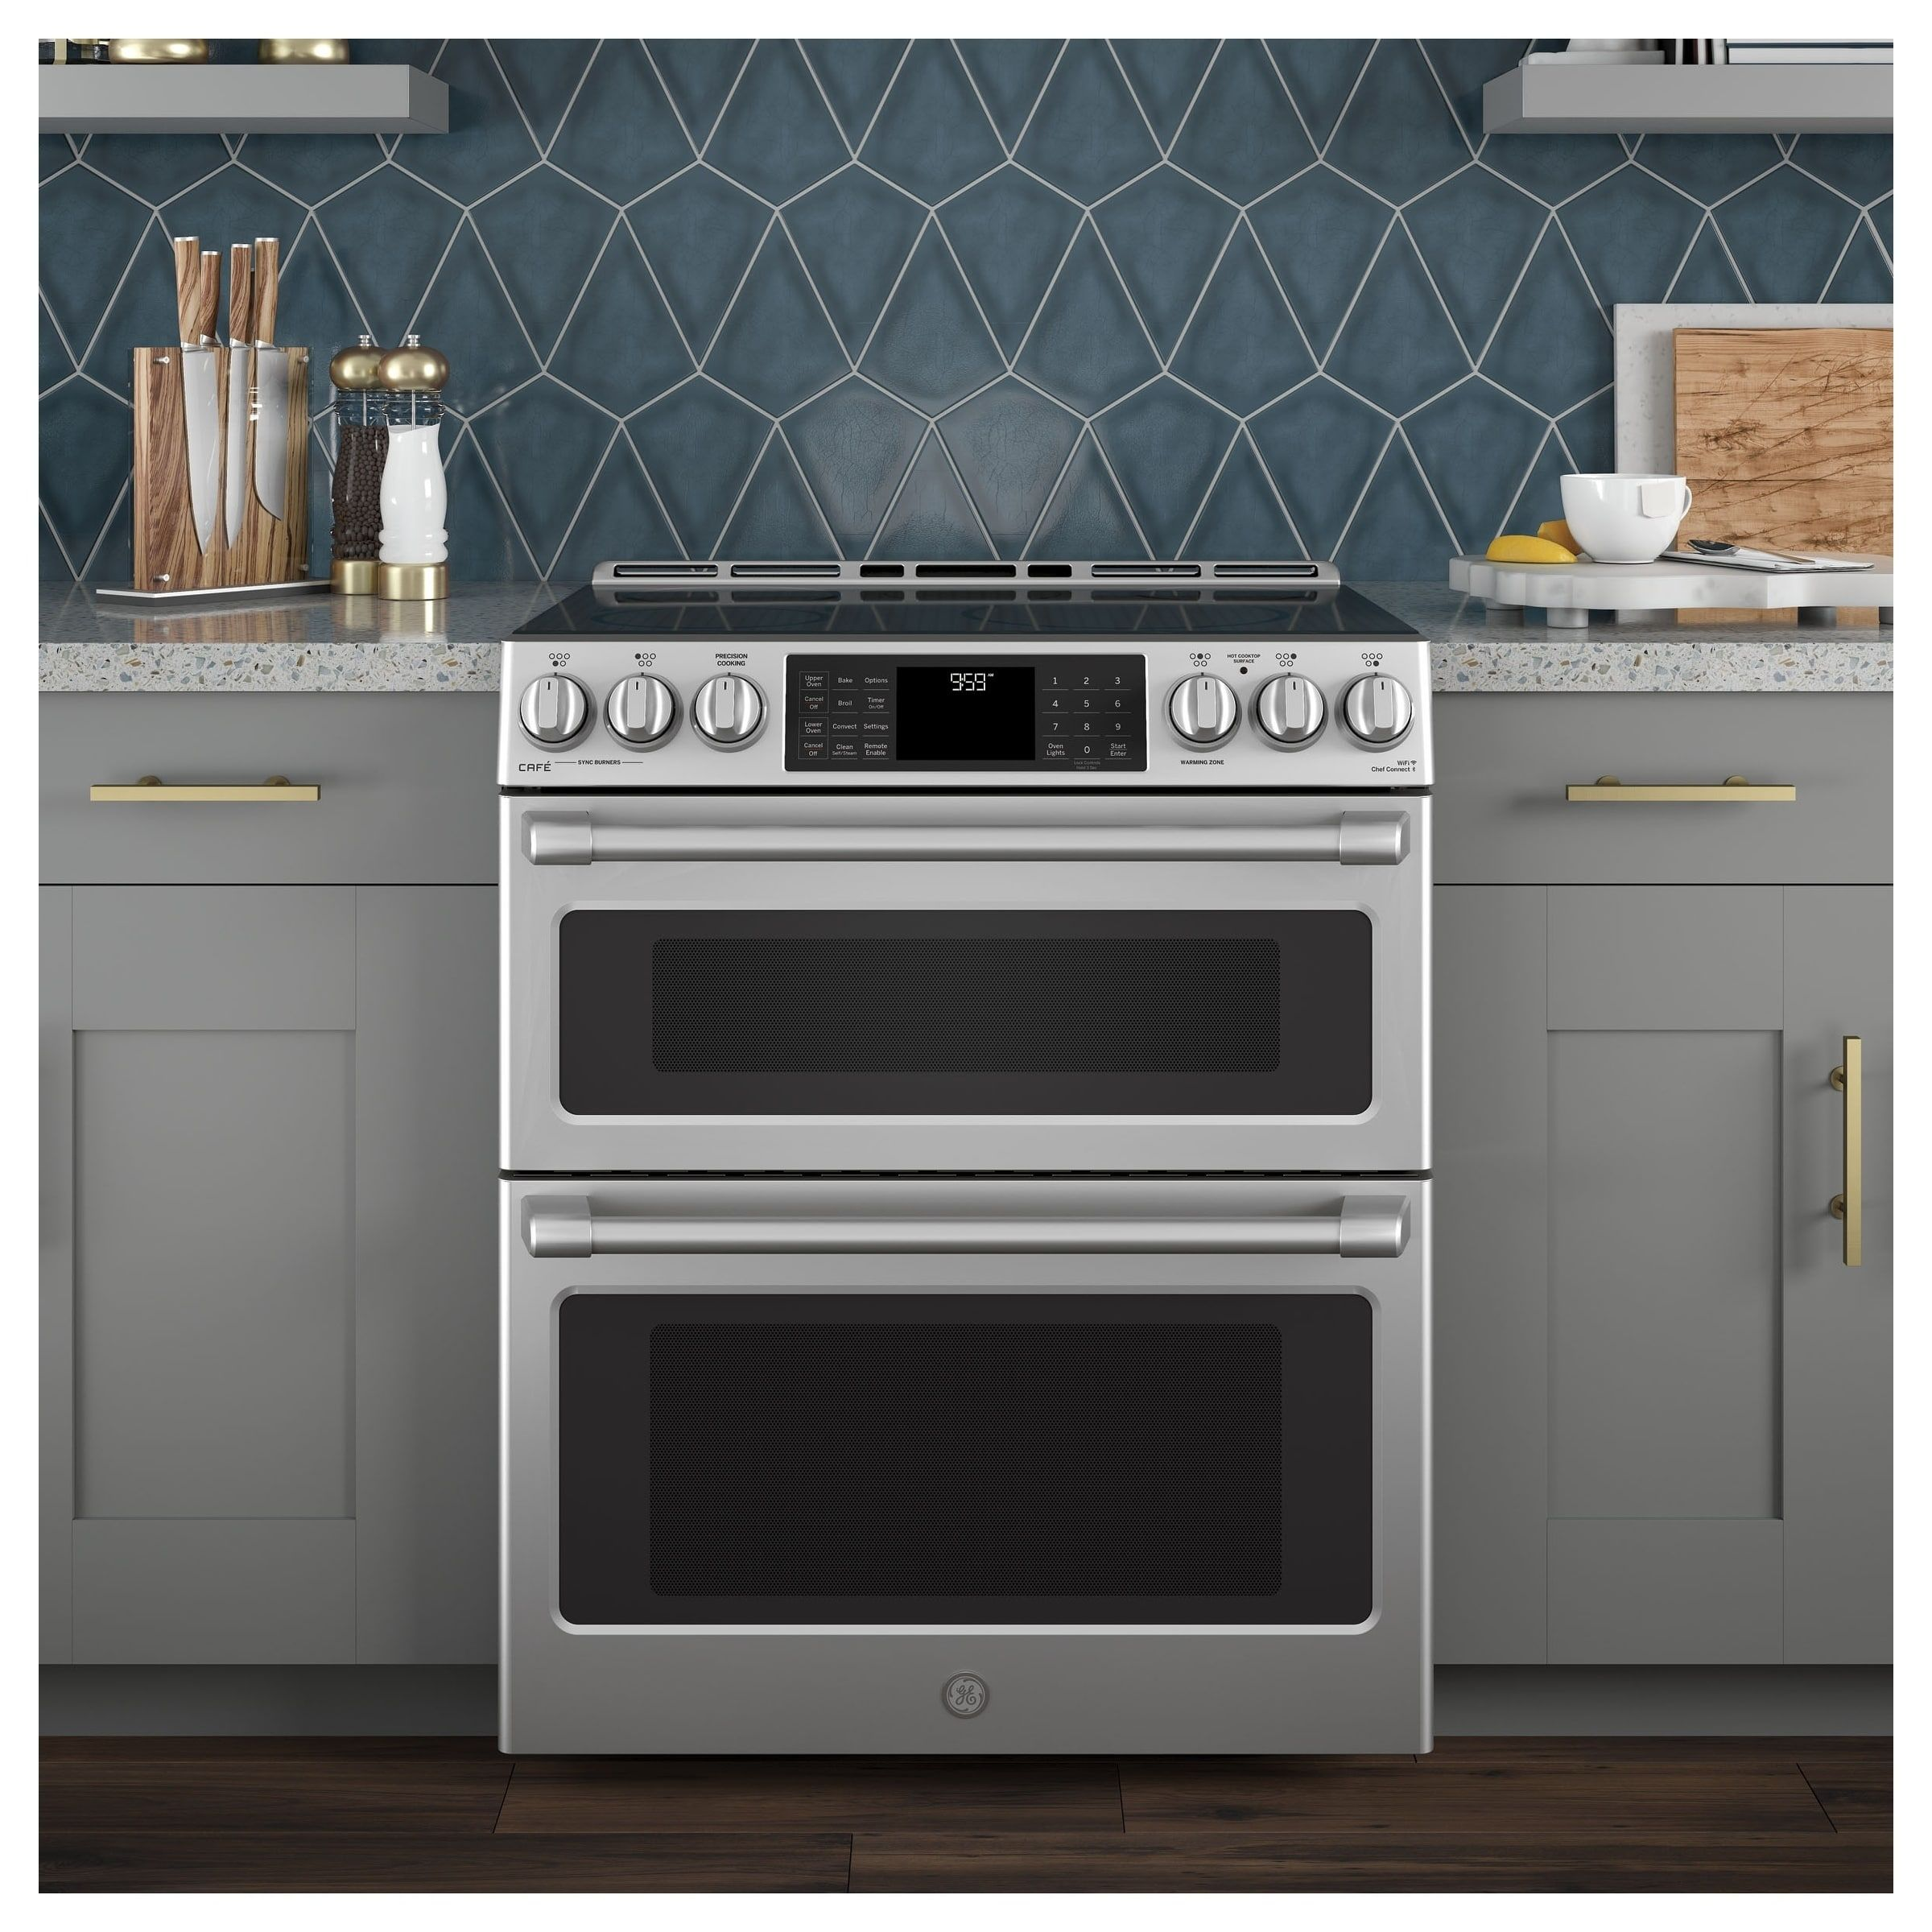 Ge Cafe Series 30 Slide In Front Control Induction And Convection Double Oven Range Gas Range Double Oven Double Oven Range Double Oven